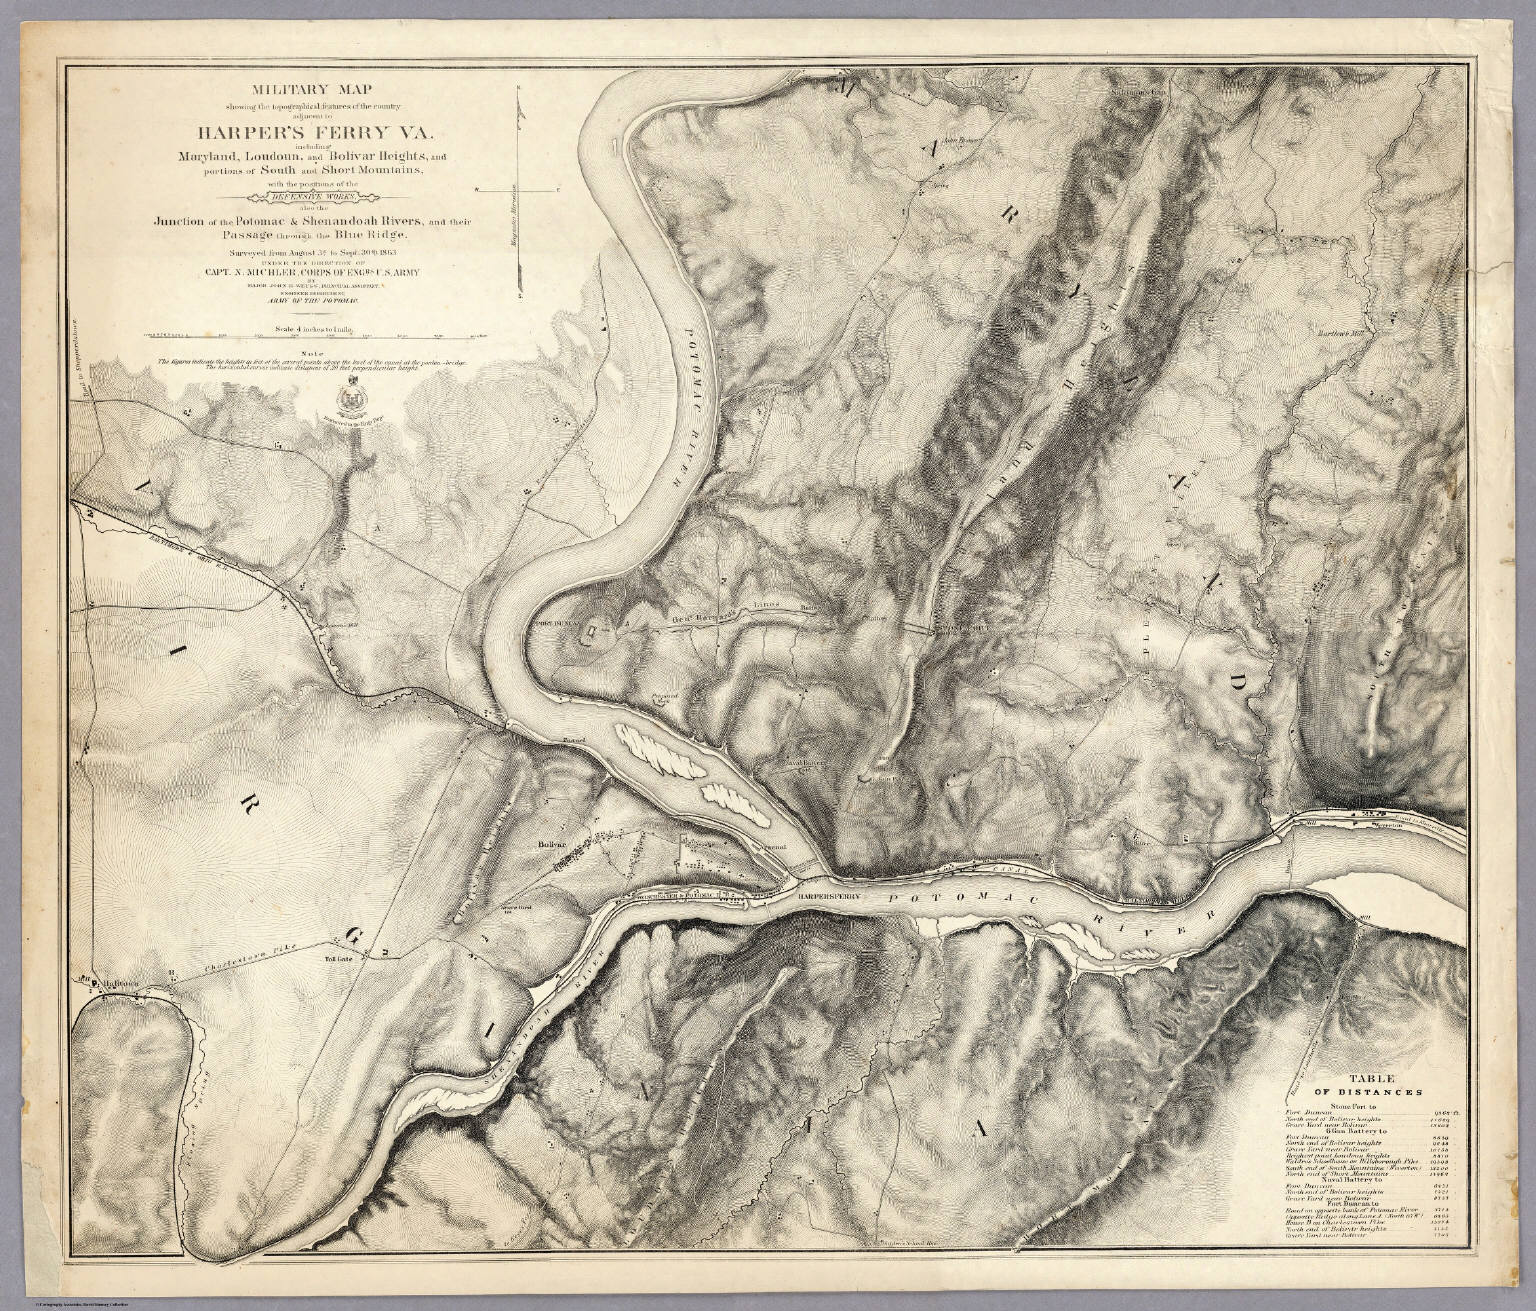 Military Map of the country adjacent to Harpers Ferry Va